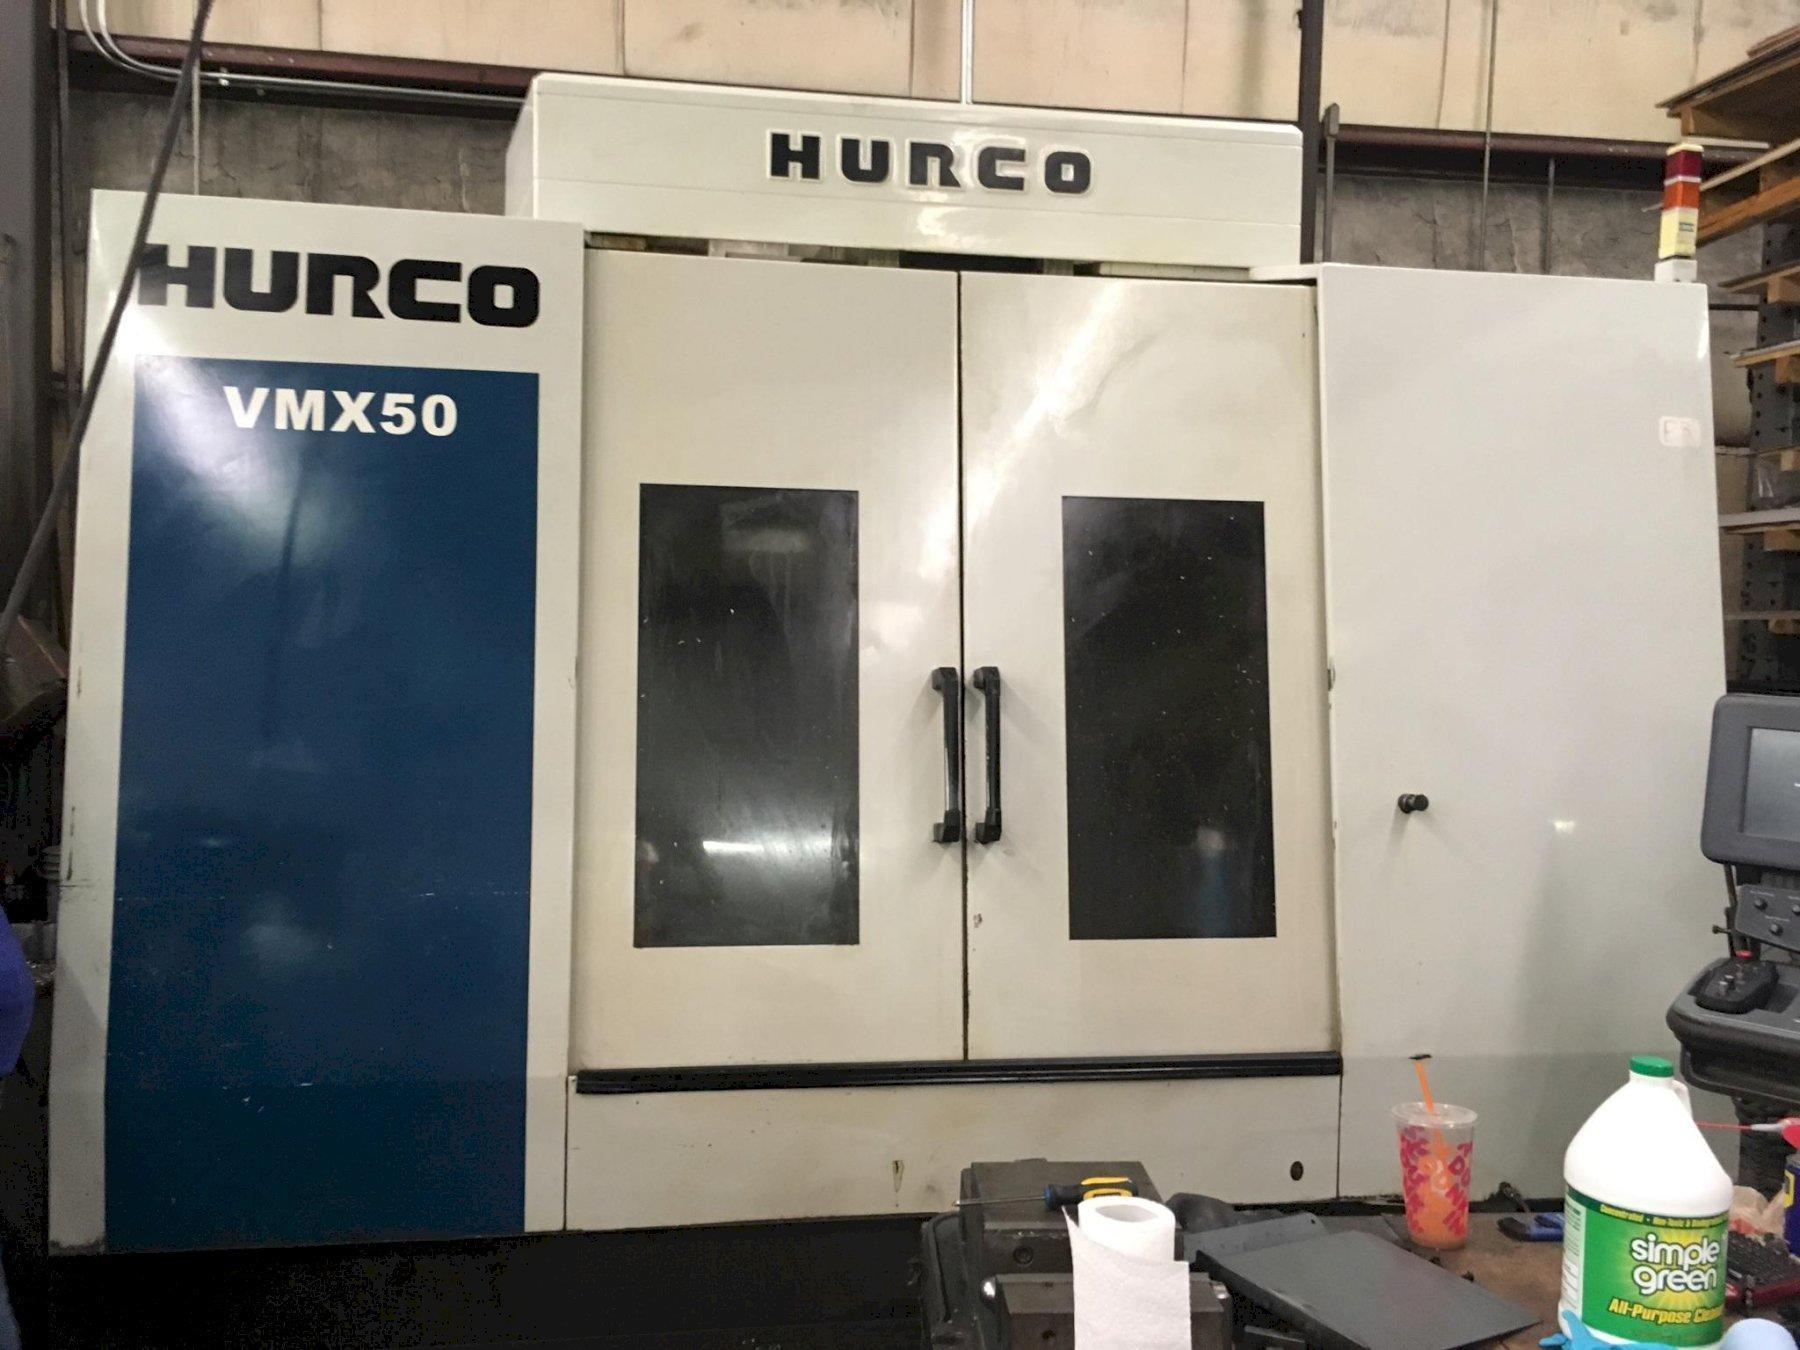 Hurco VMX 50 CNC Vertical Machining Center, Mfg. 2006